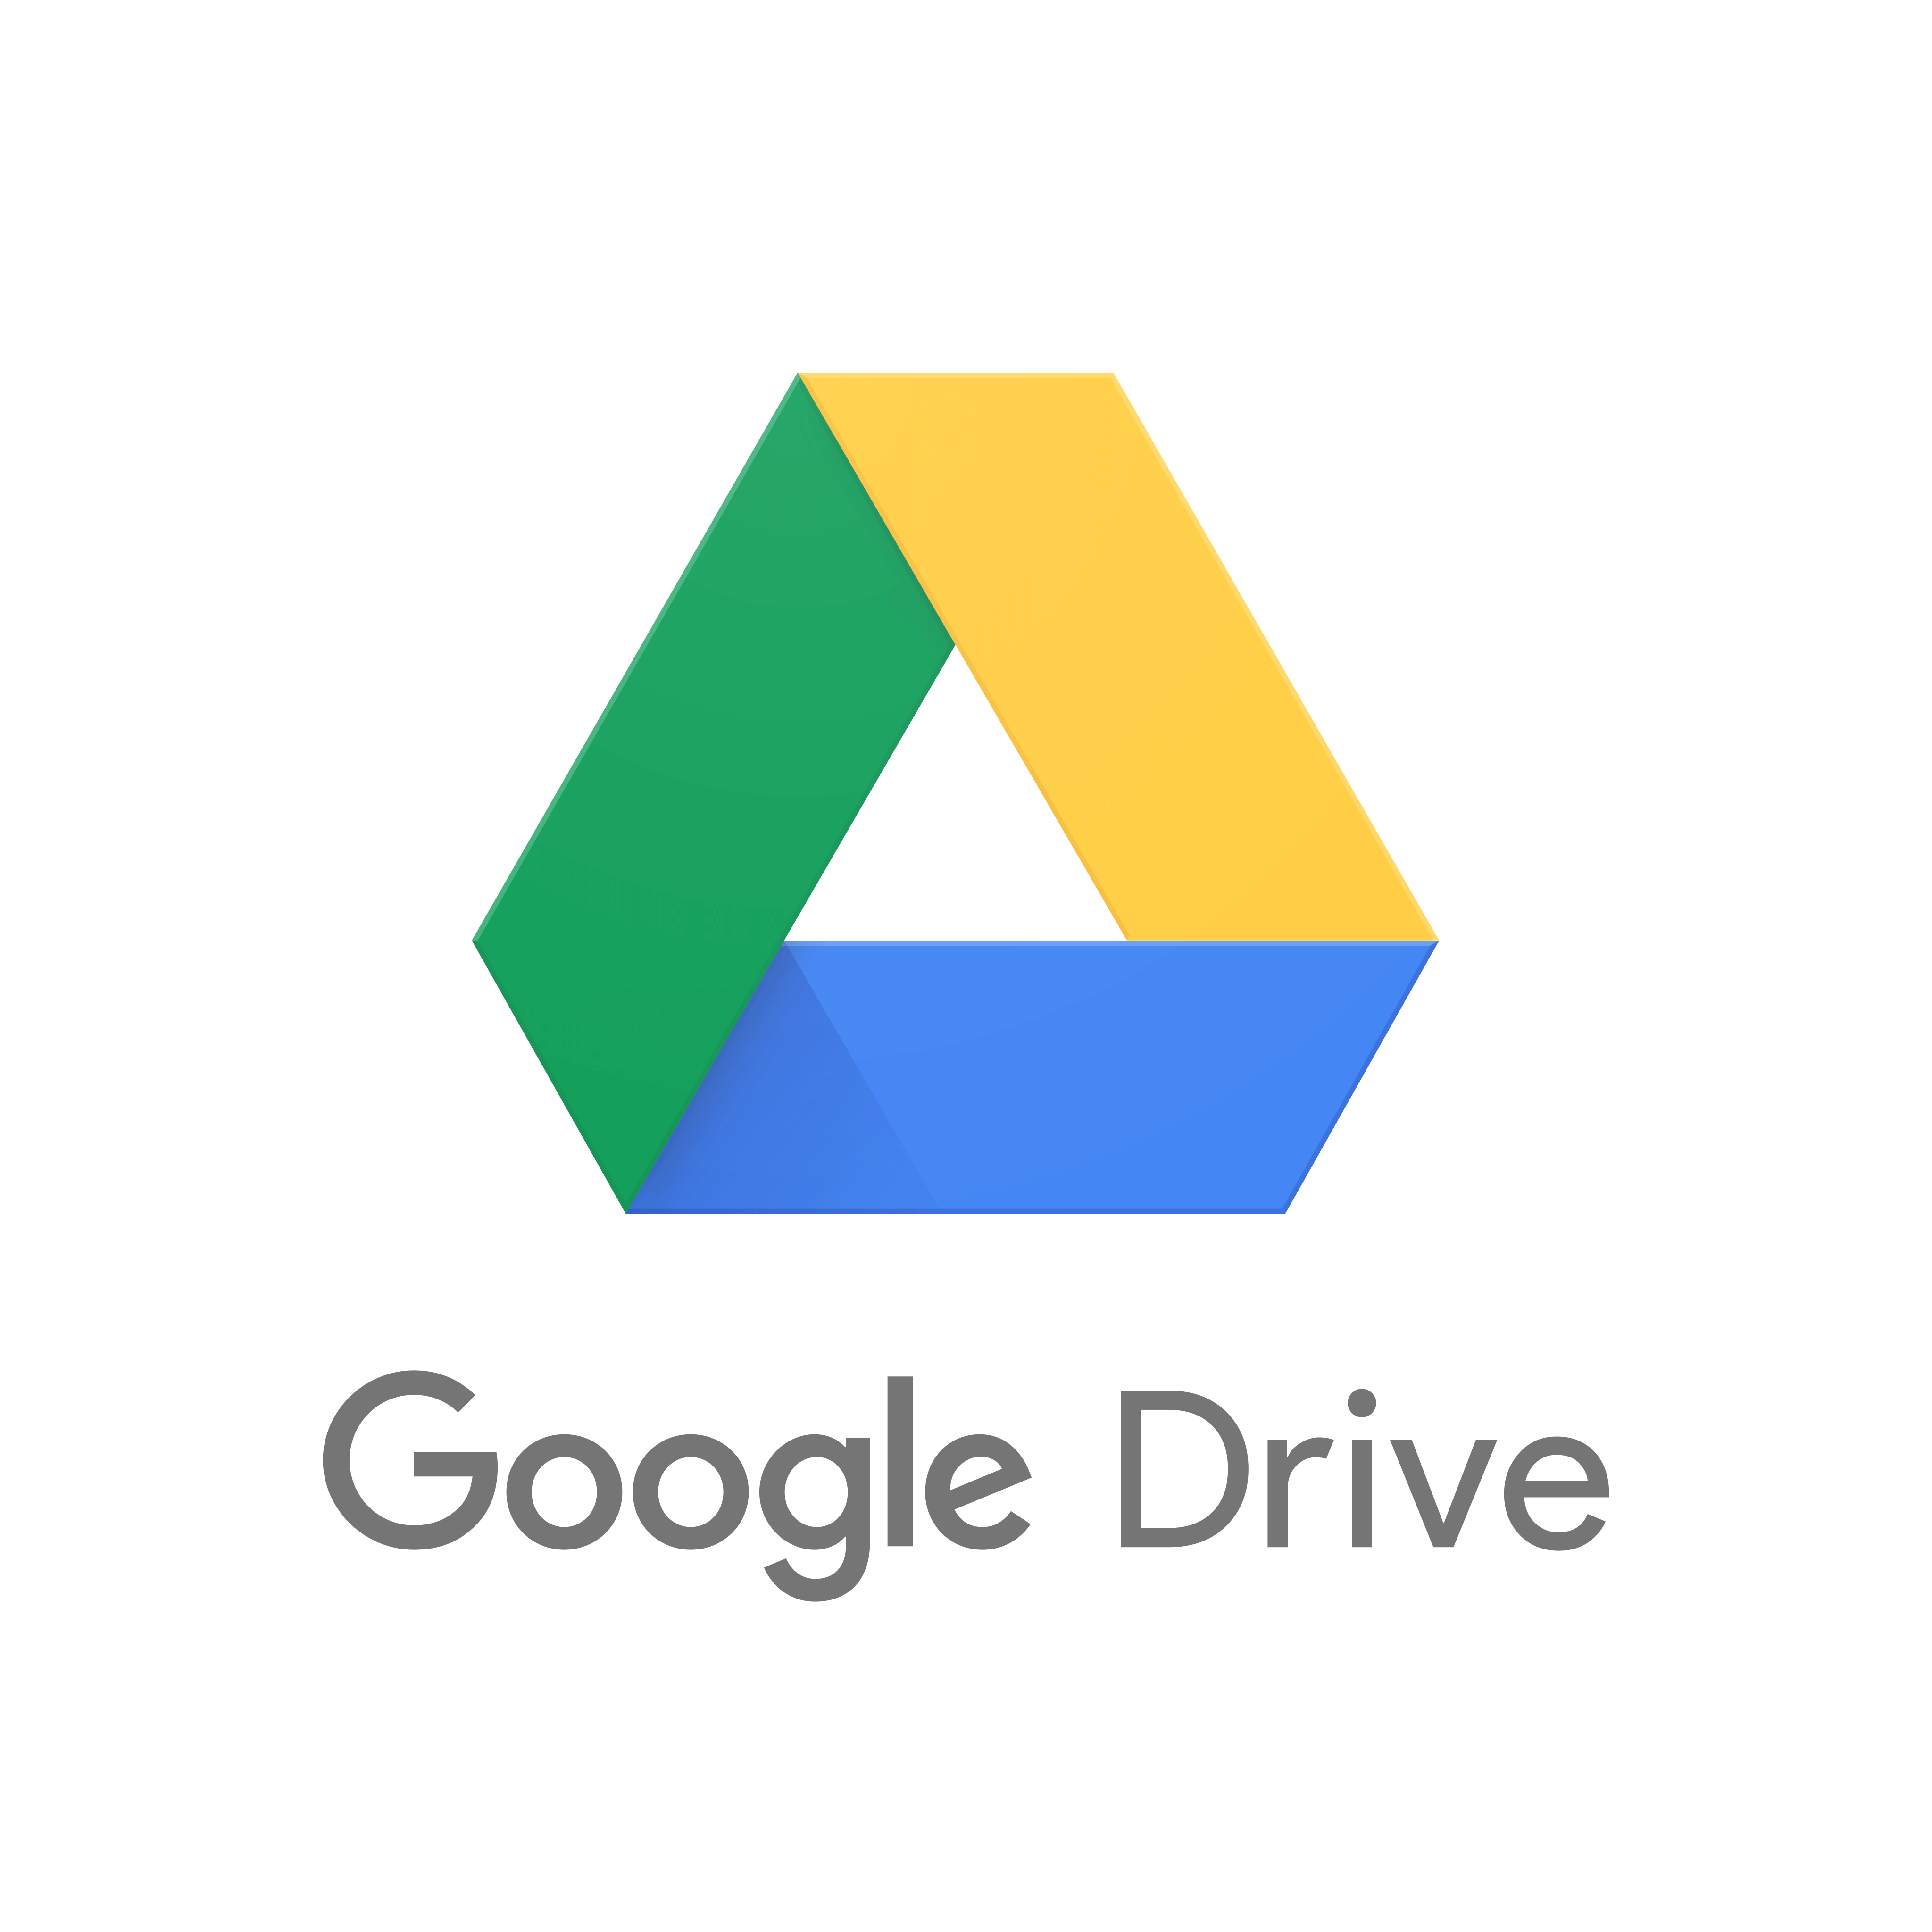 [LayerOnline] Unlimited Storage Online Backup Google Adsense - The Best Way To Increase Your Adsense Source Of Income?